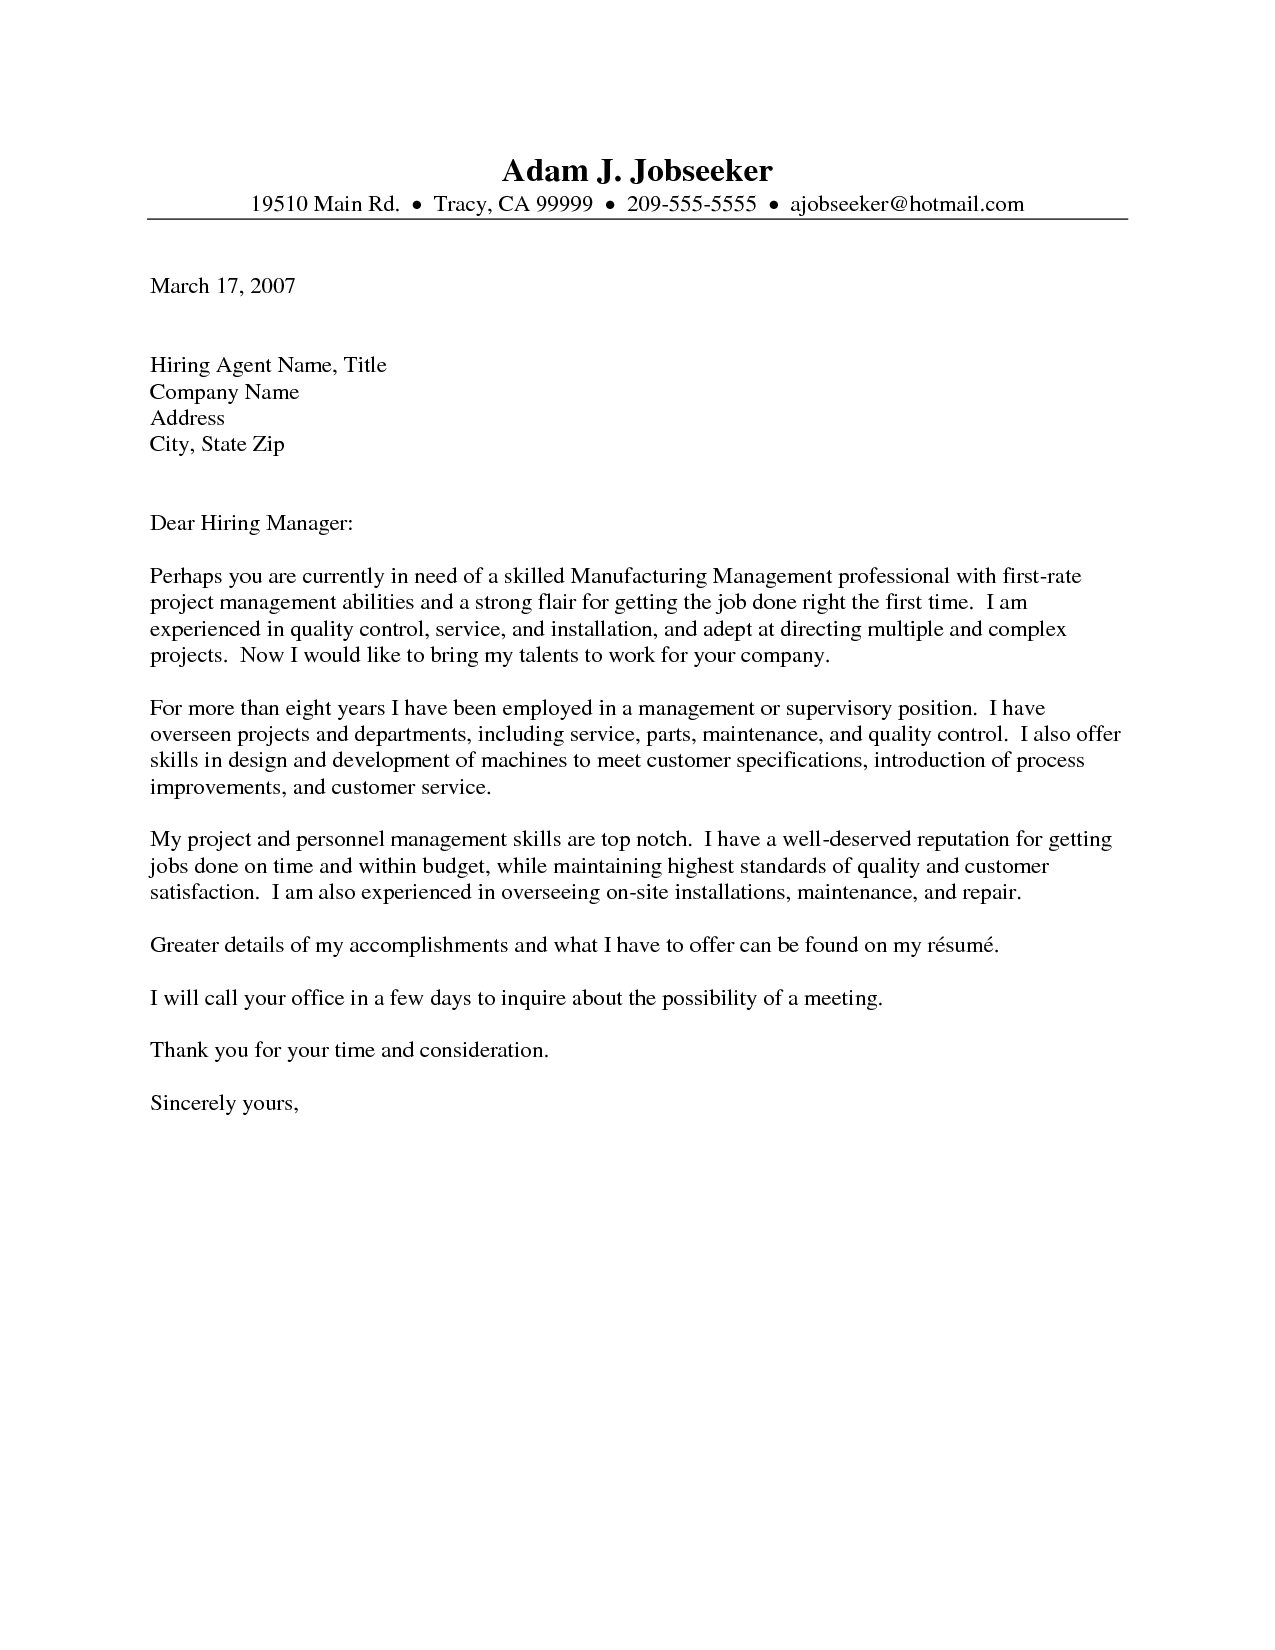 Medical assistant Cover Letter Template Examples | Letter Template ...